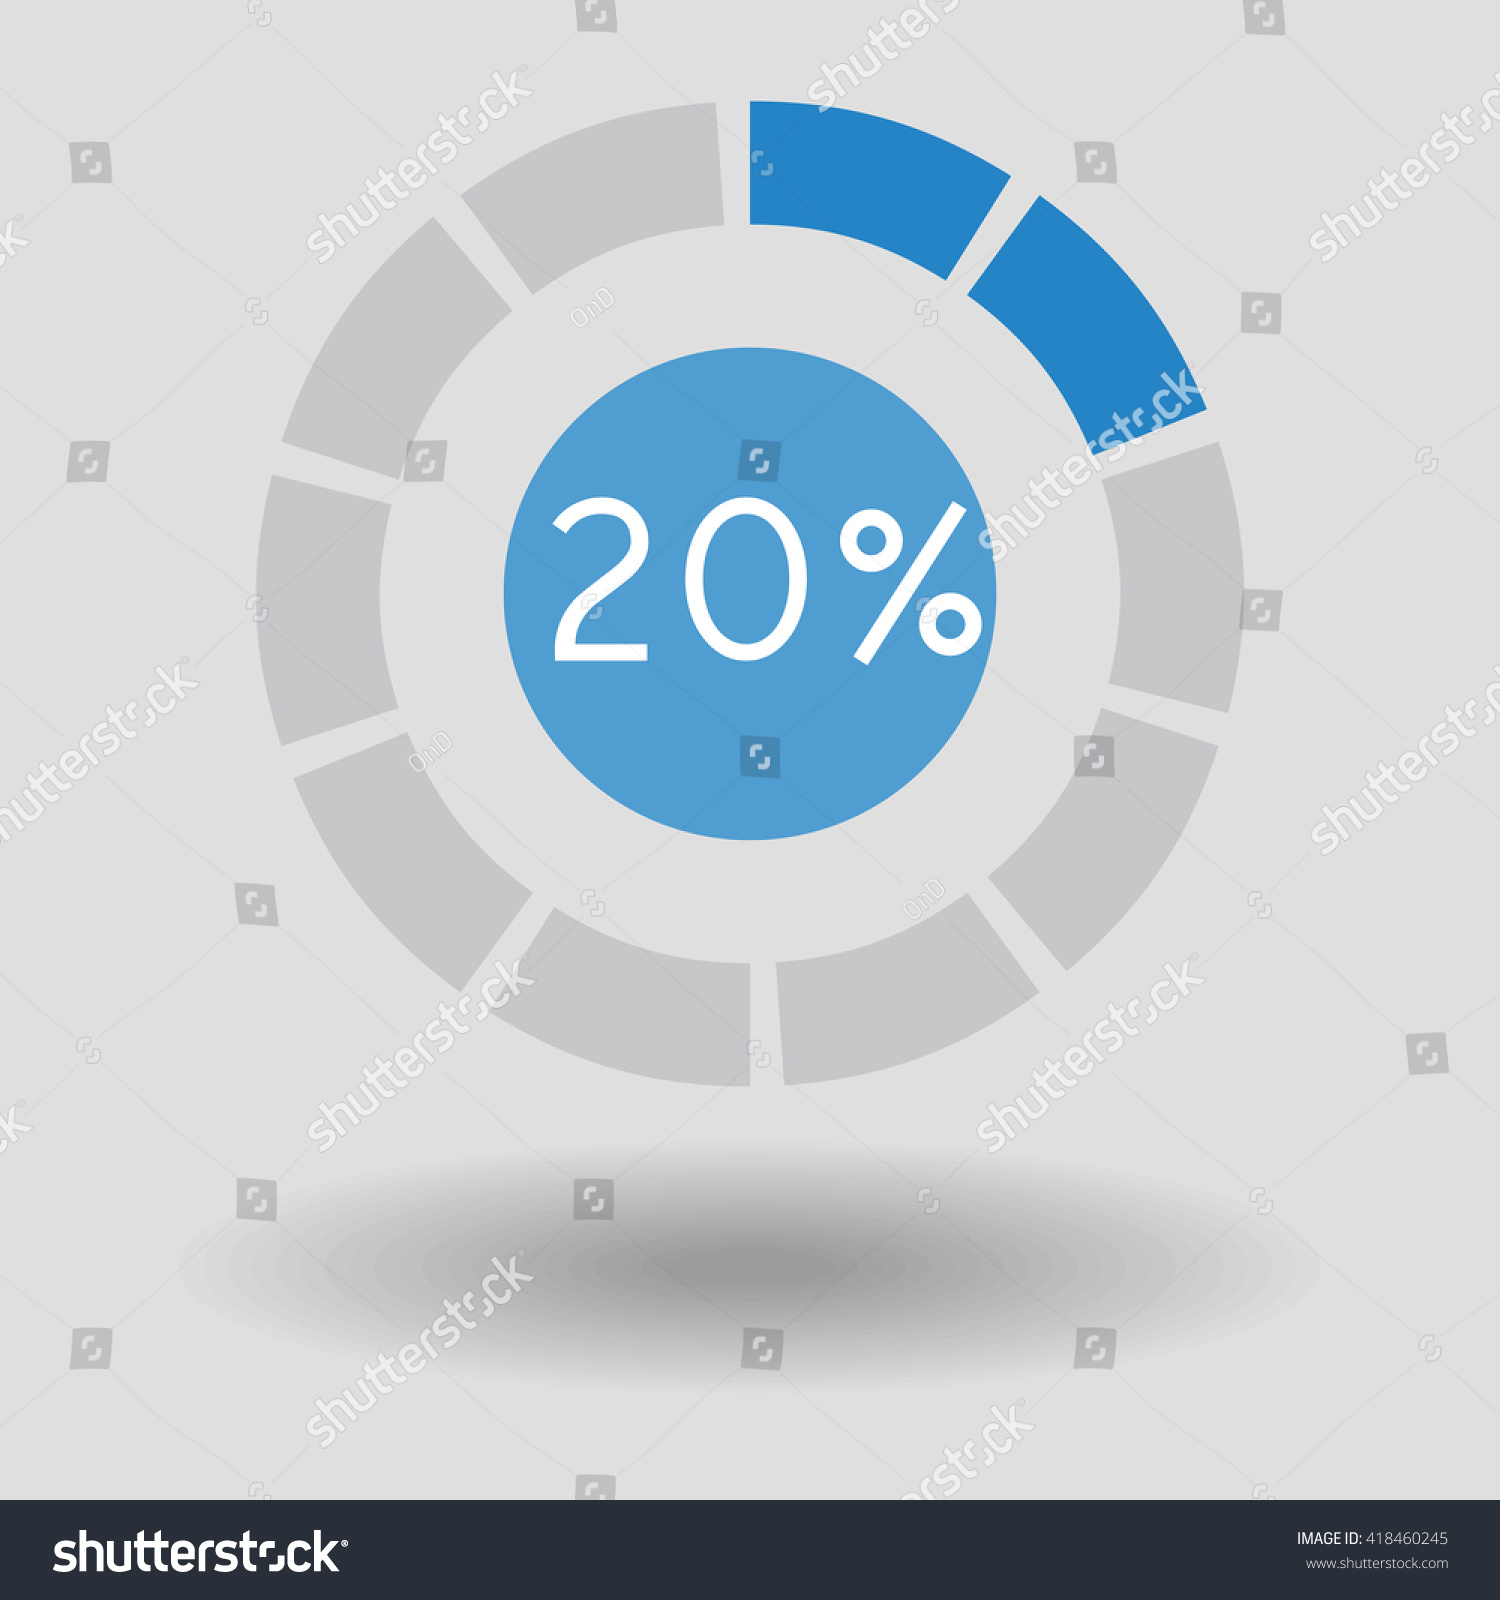 Icon business colorful pie chart circle stock vector 418460245 icon business colorful pie chart circle graph 20 blue vector illustration nvjuhfo Image collections